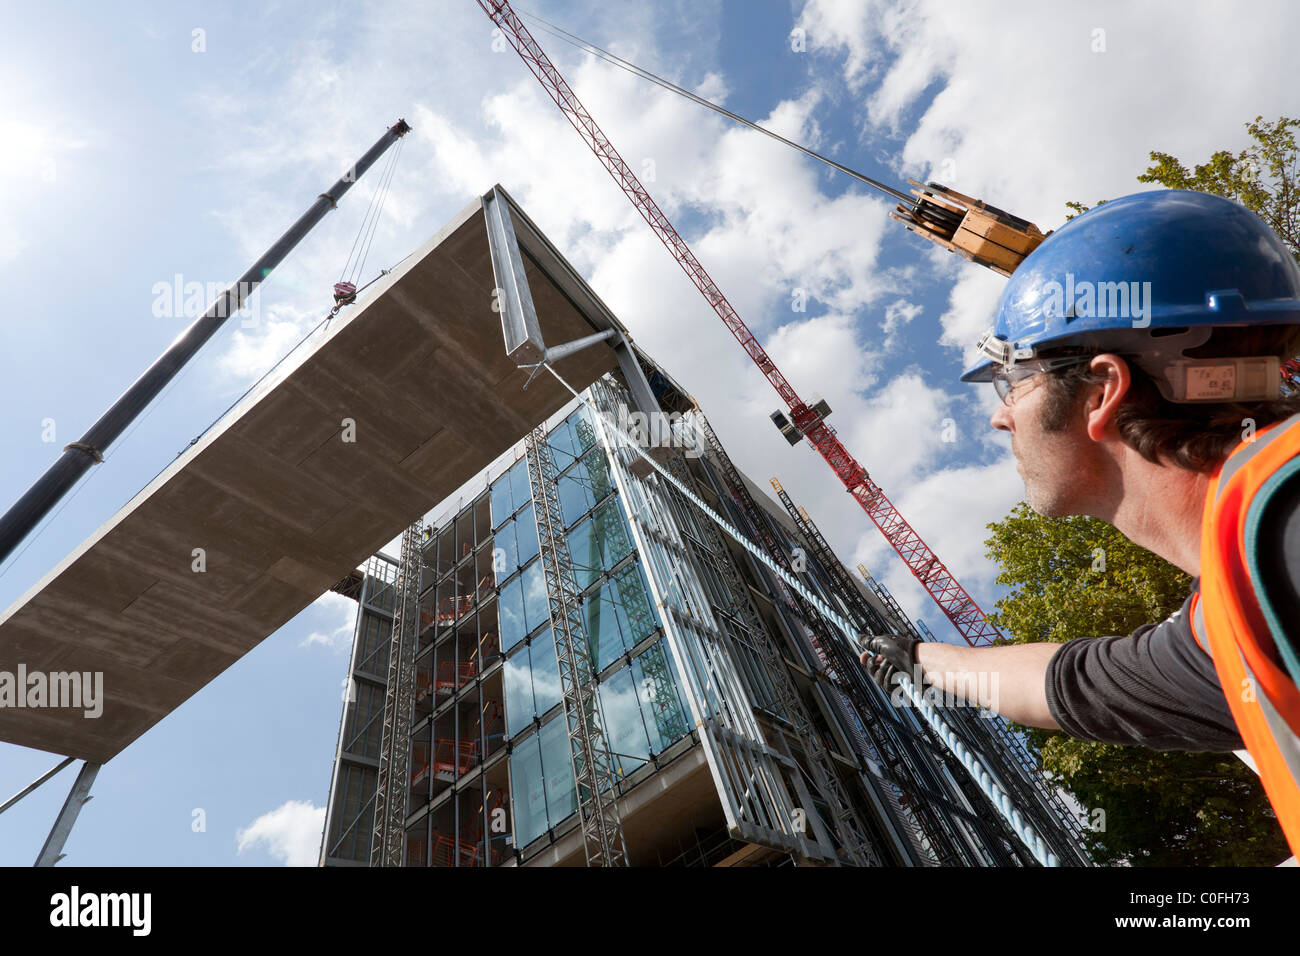 Operator holding ropes to guide crane lift on construction site. - Stock Image